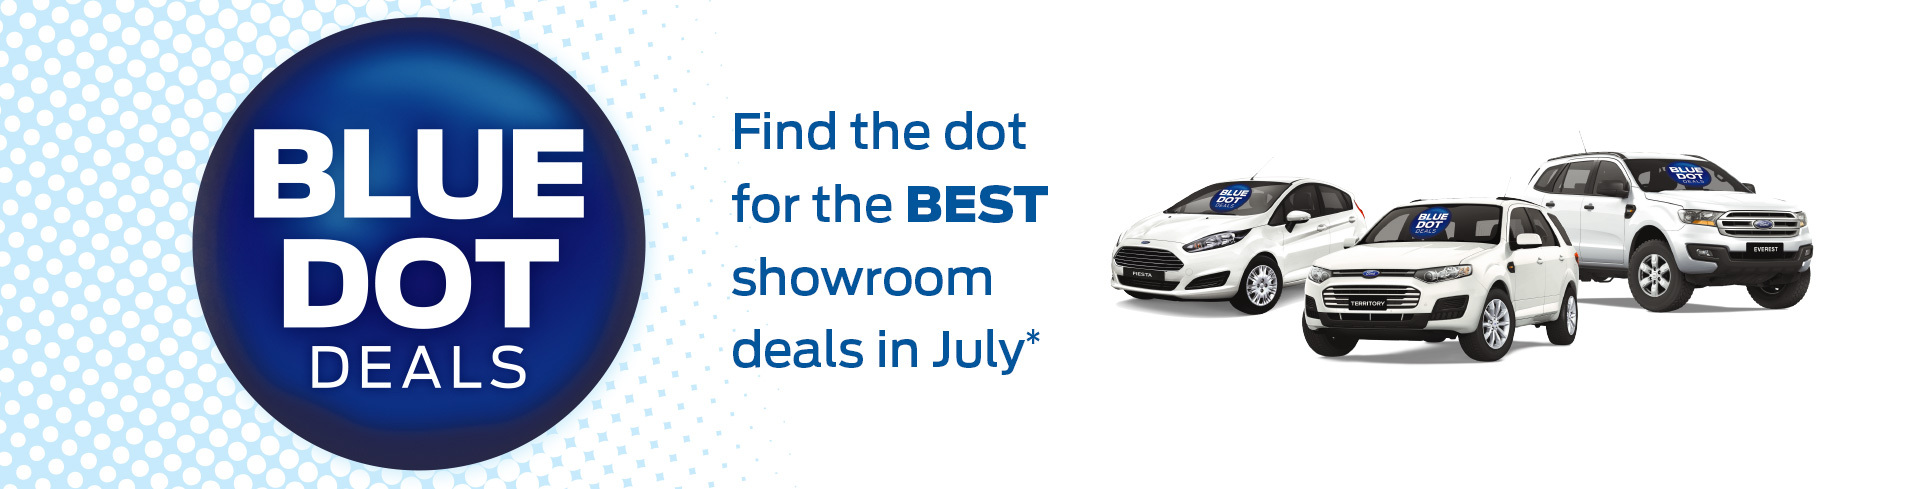 Blue Dot Deals - Find the dot for the best showroom deals in July